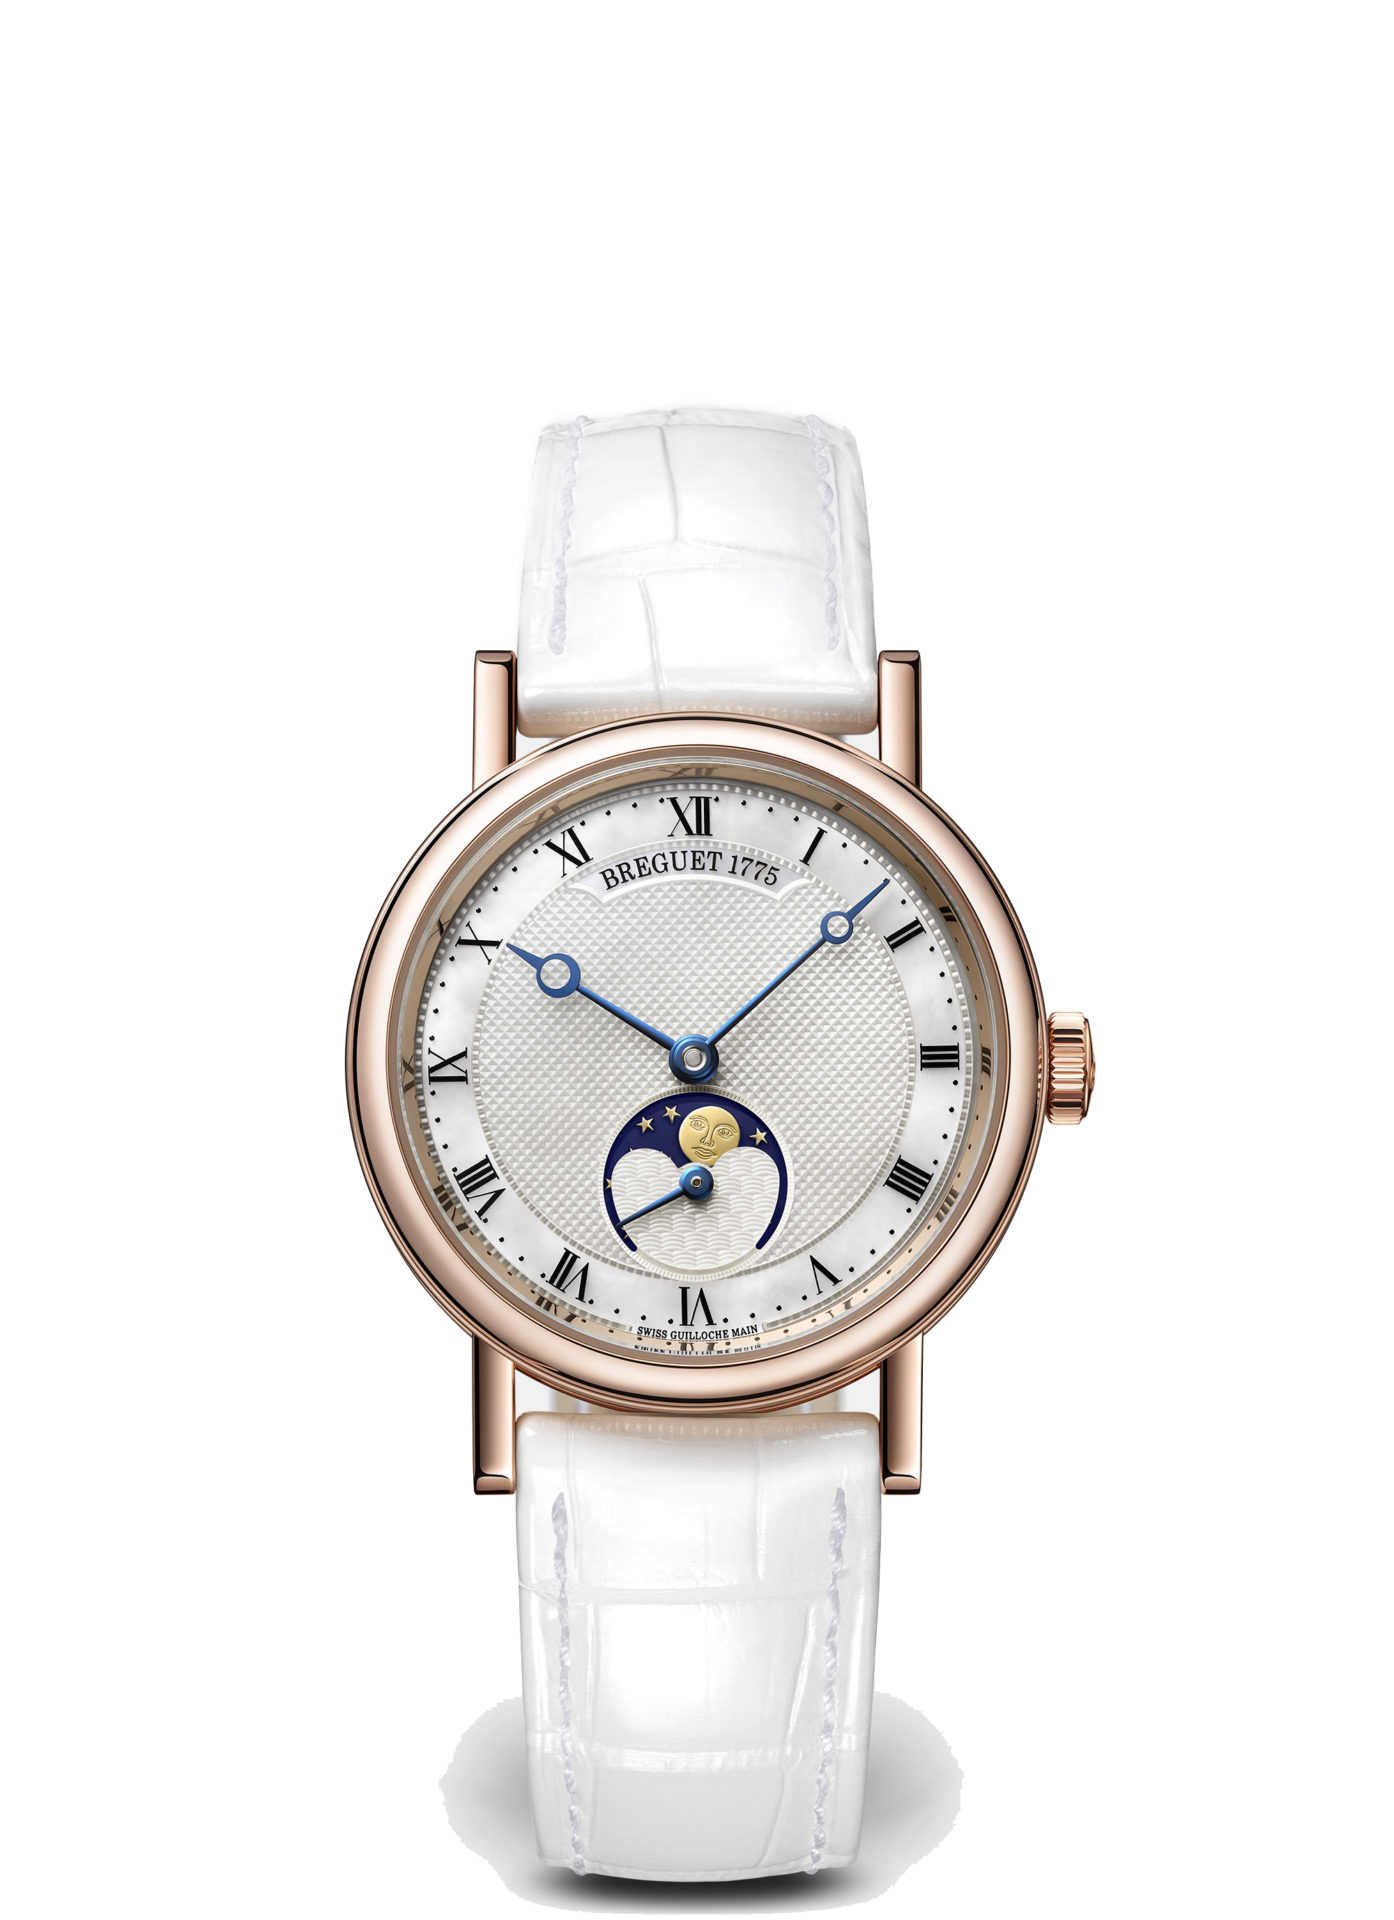 Breguet-Classique-Dame-9087-Hall-of-Time-9087br-53-964